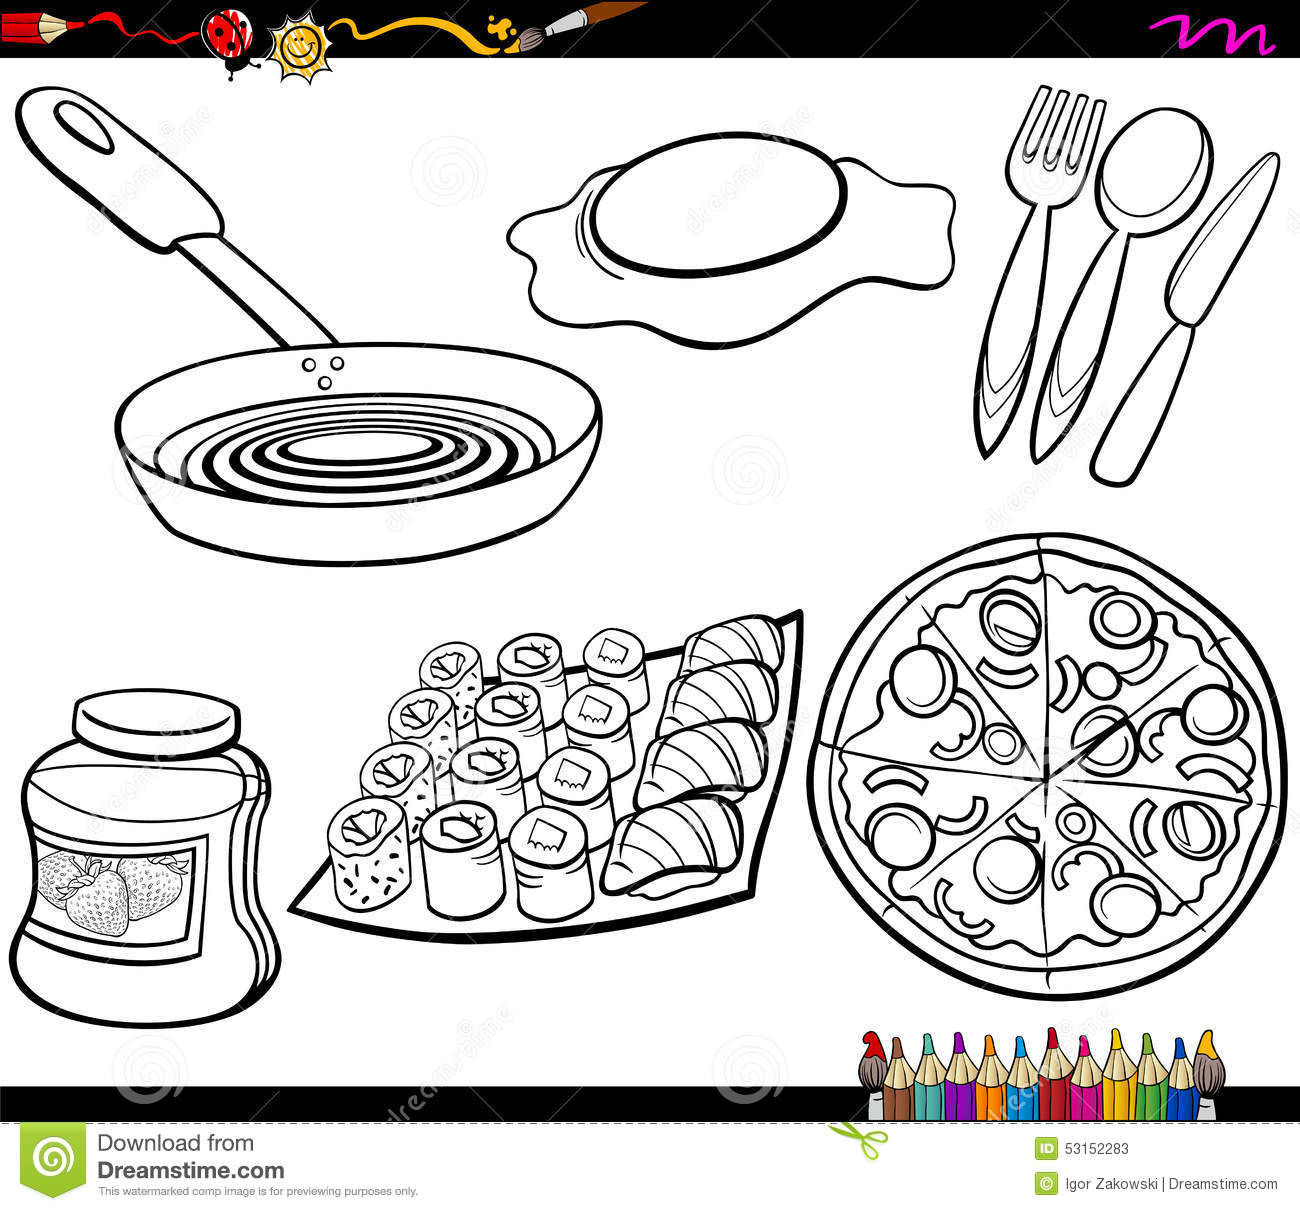 Food objects set coloring page stock vector image 53152283 for Art cuisine evolution 10 piece cooking set